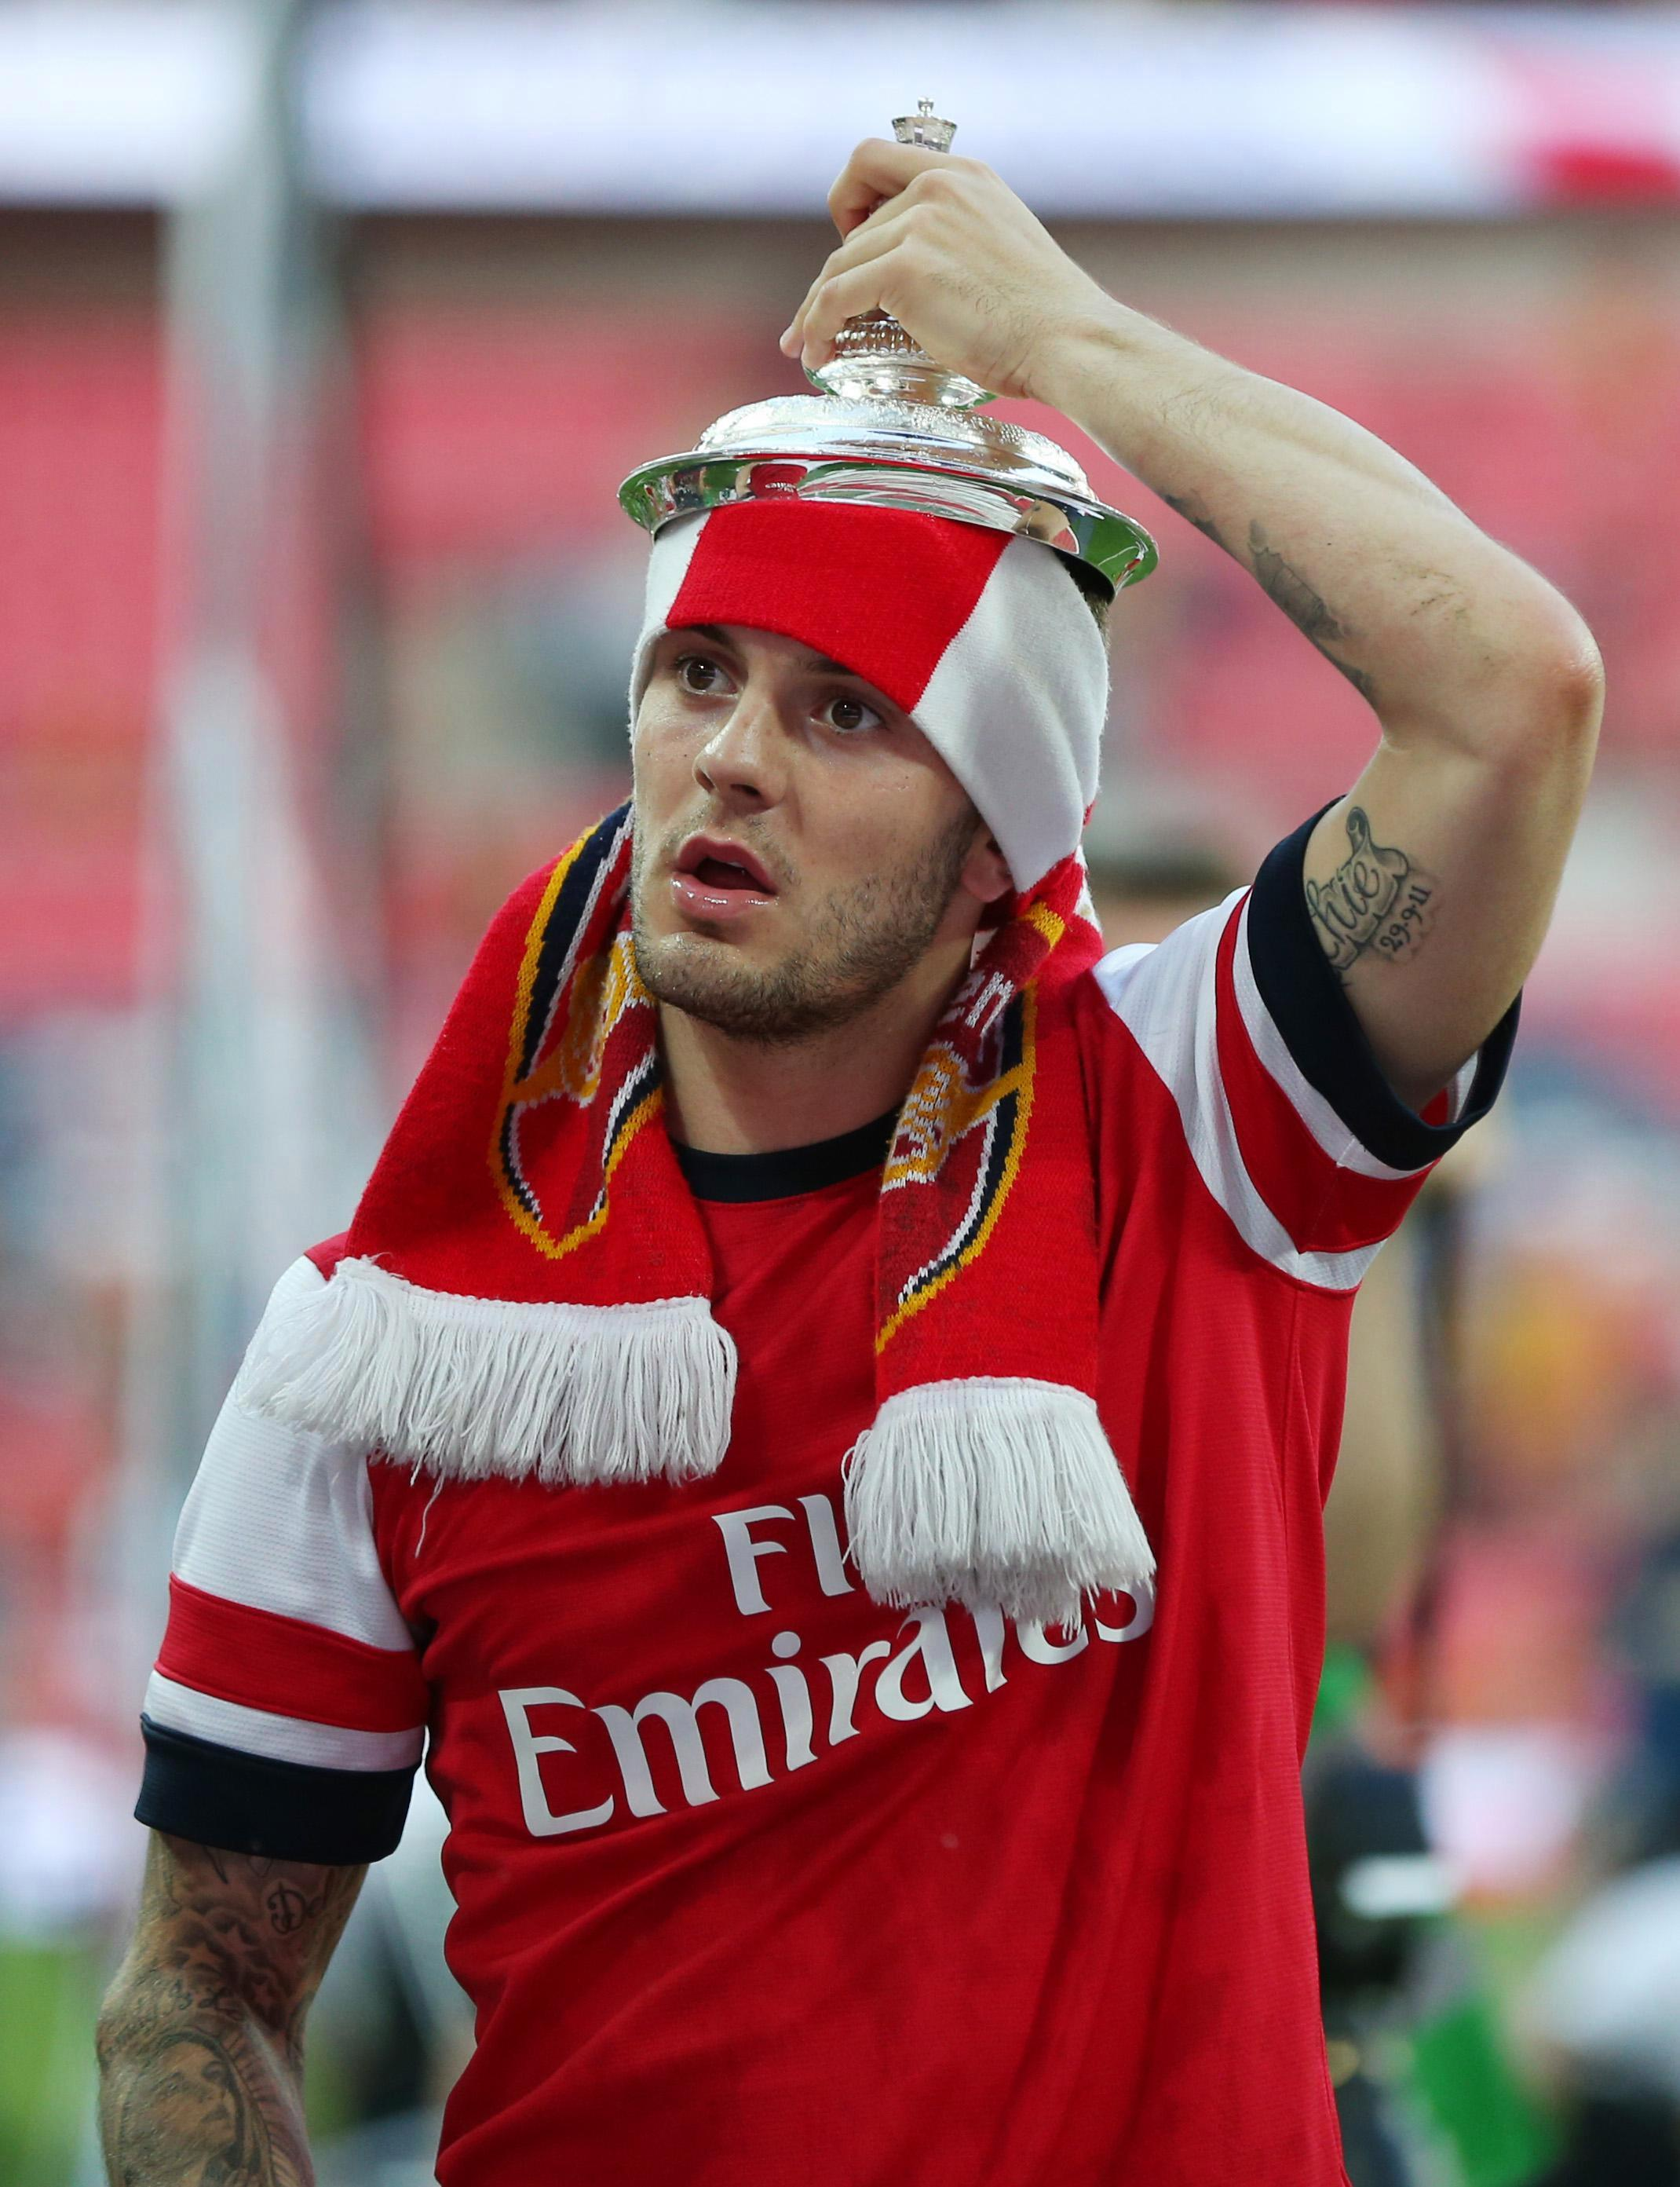 Jack Wilshere has been with the Gunners since he joined the academy in 2001